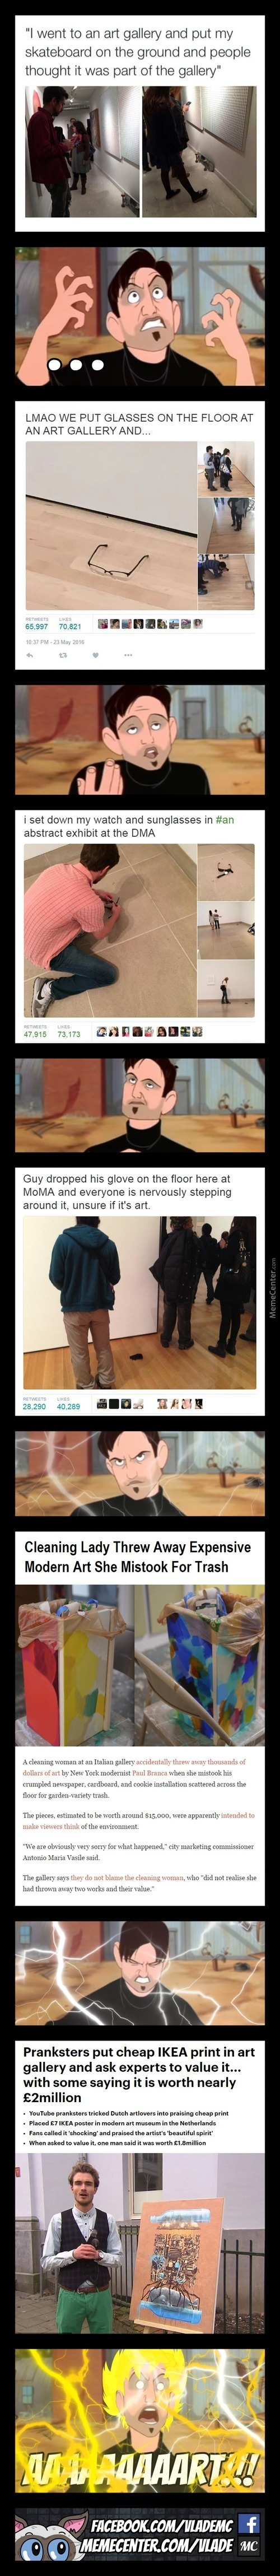 Gotta Love Modern Art, Huh?